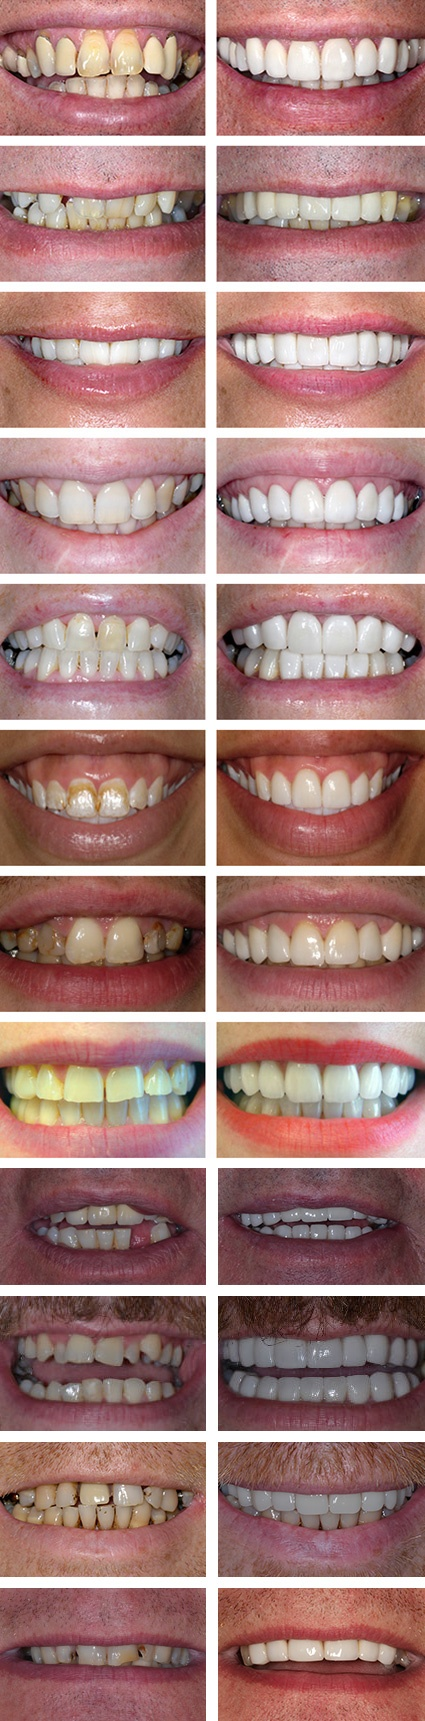 perfect smile dentistry